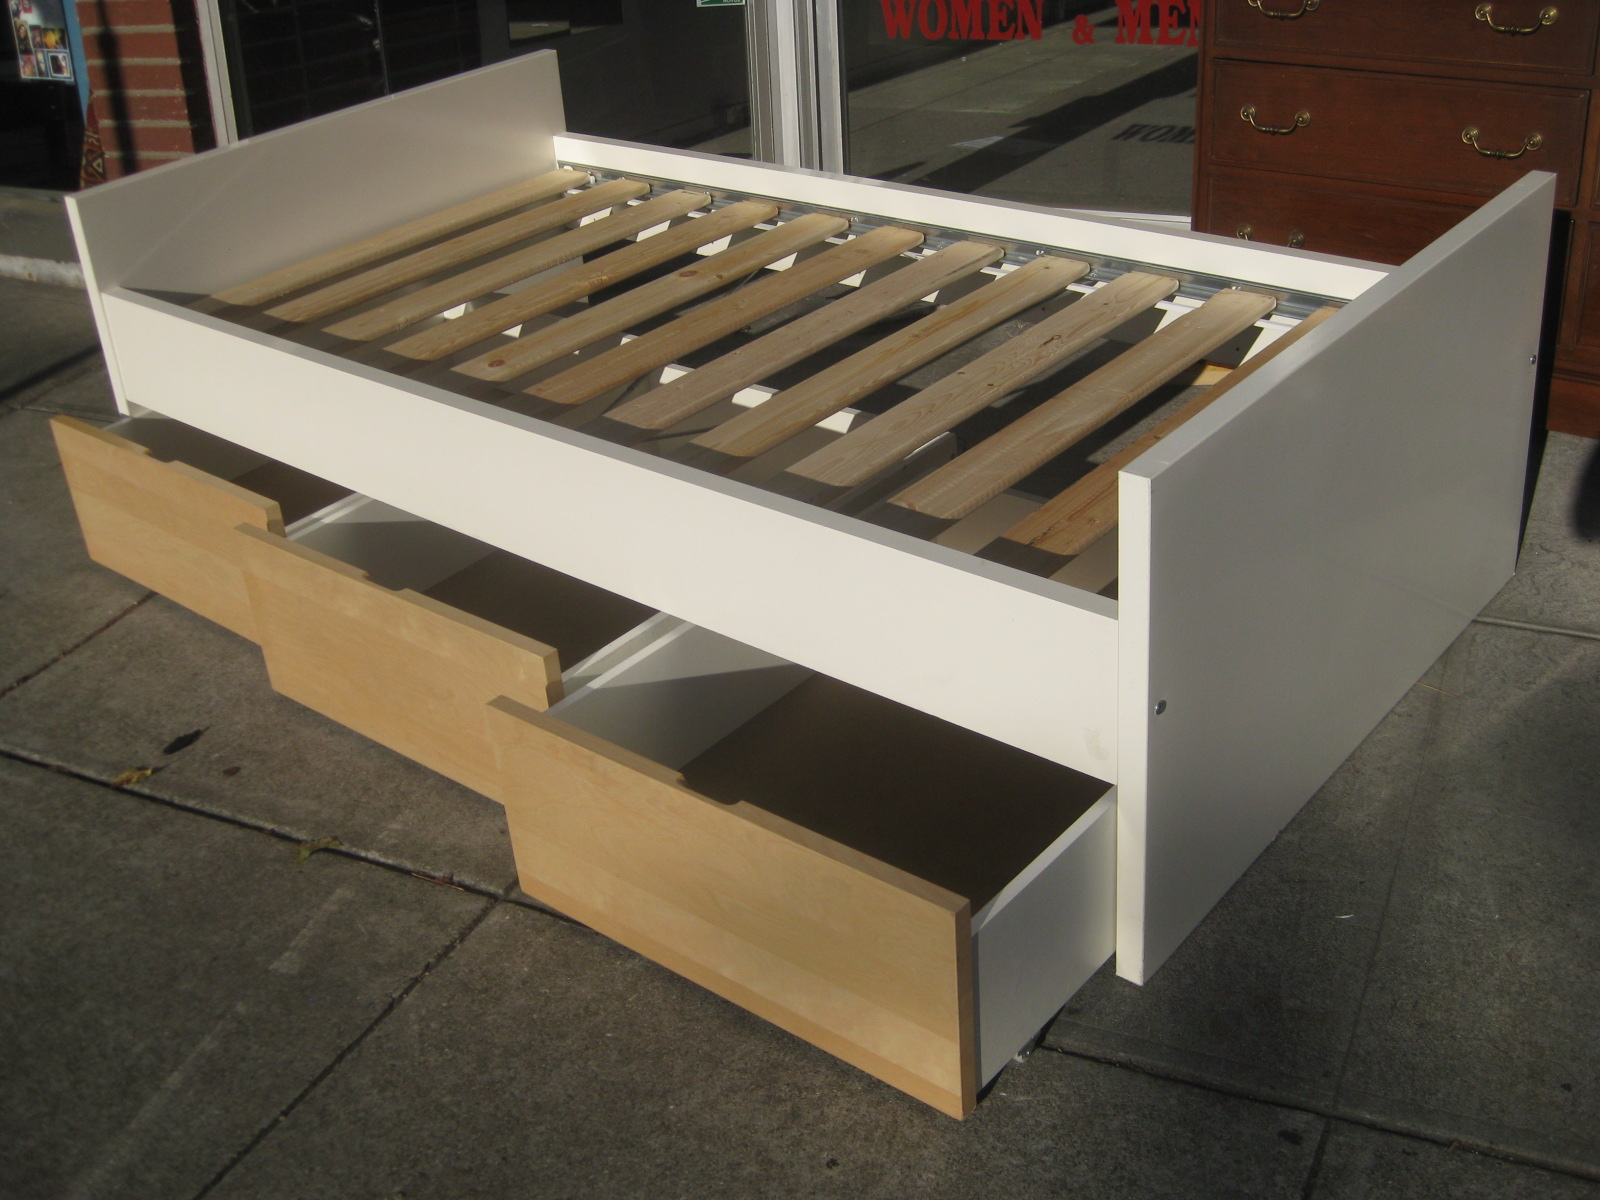 Beds with drawers underneath homesfeed for Make your own bed frame ideas